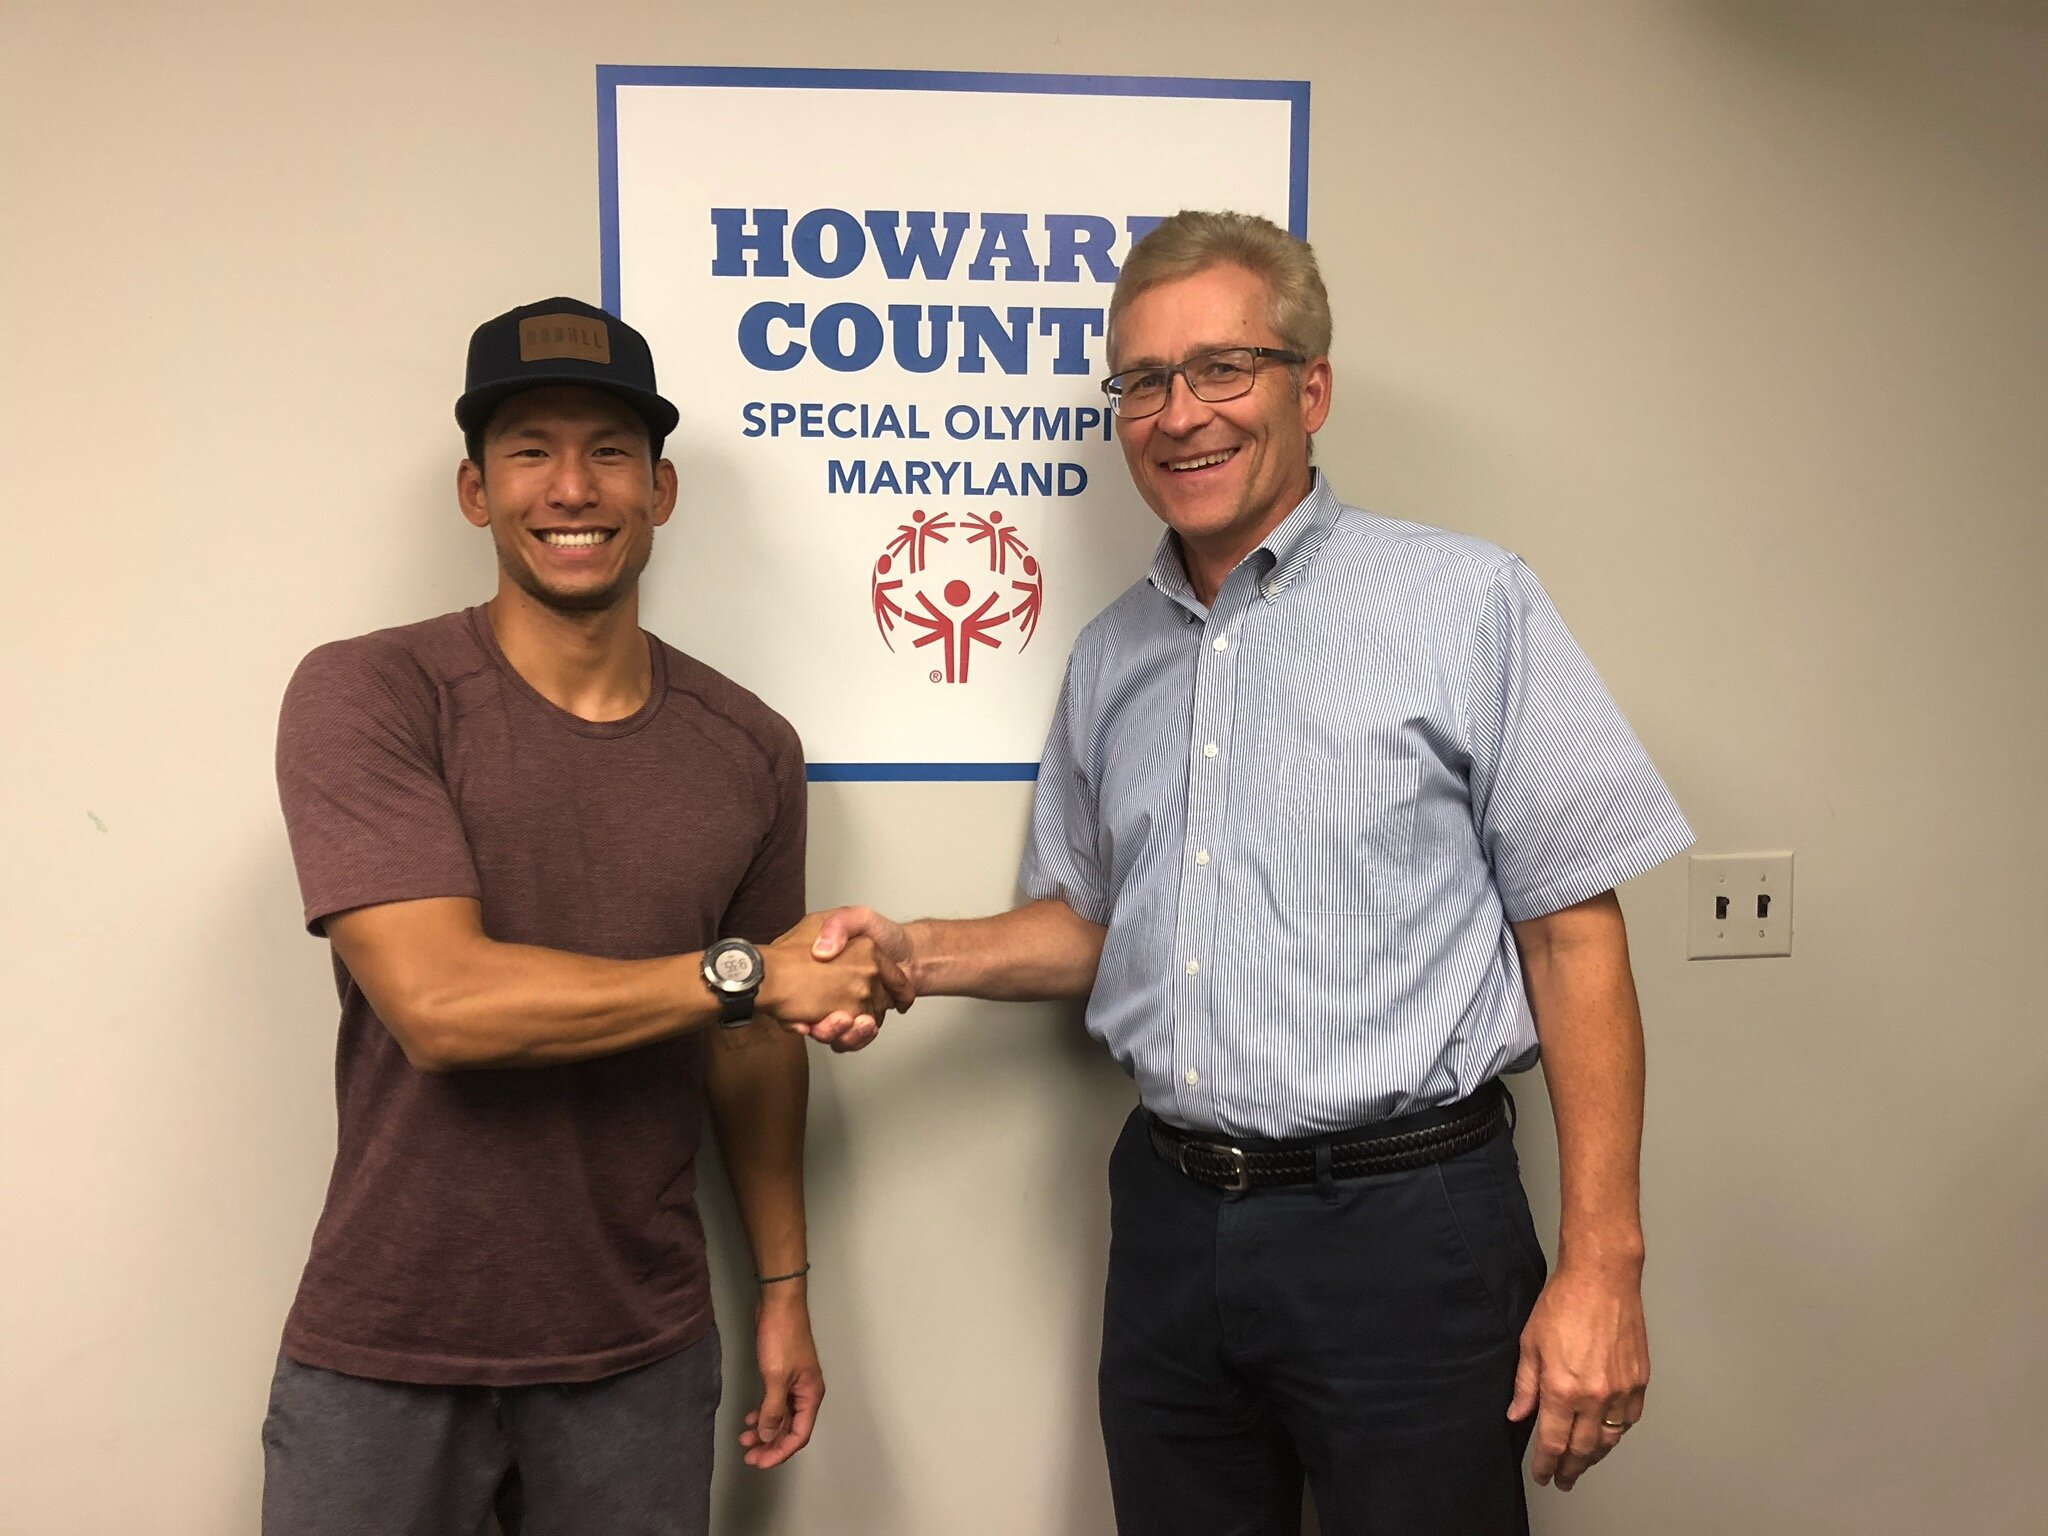 Pictured above: Wilson Pak, General Manager of 12 Labours CrossFit & Bob Baker, Director of Special Olympics Maryland Howard County